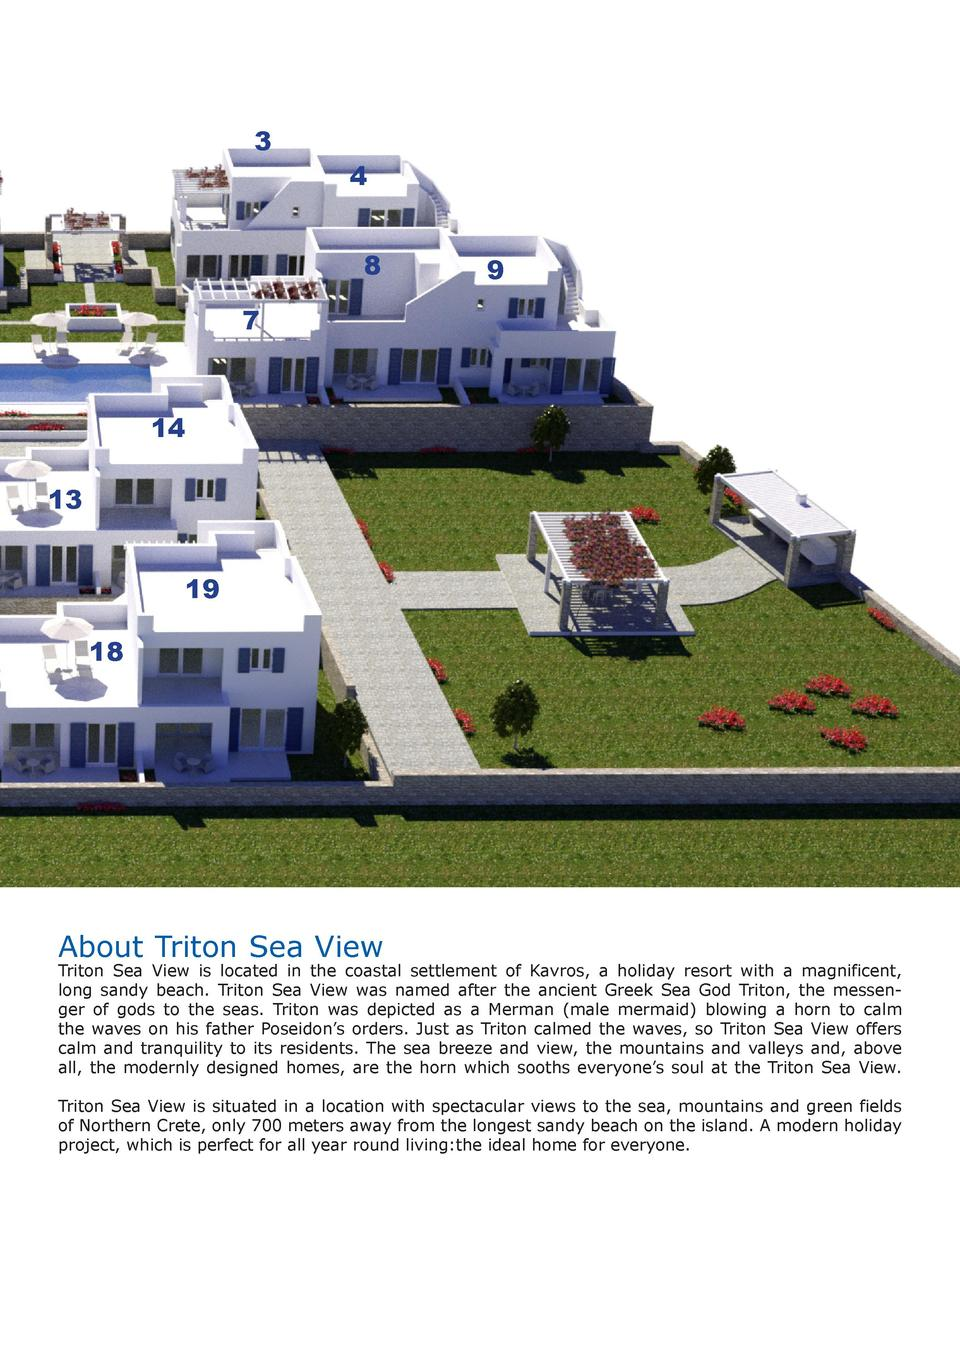 3  4 8  9  7  14 13 19 18  About Triton Sea View  Triton Sea View is located in the coastal settlement of Kavros, a holida...